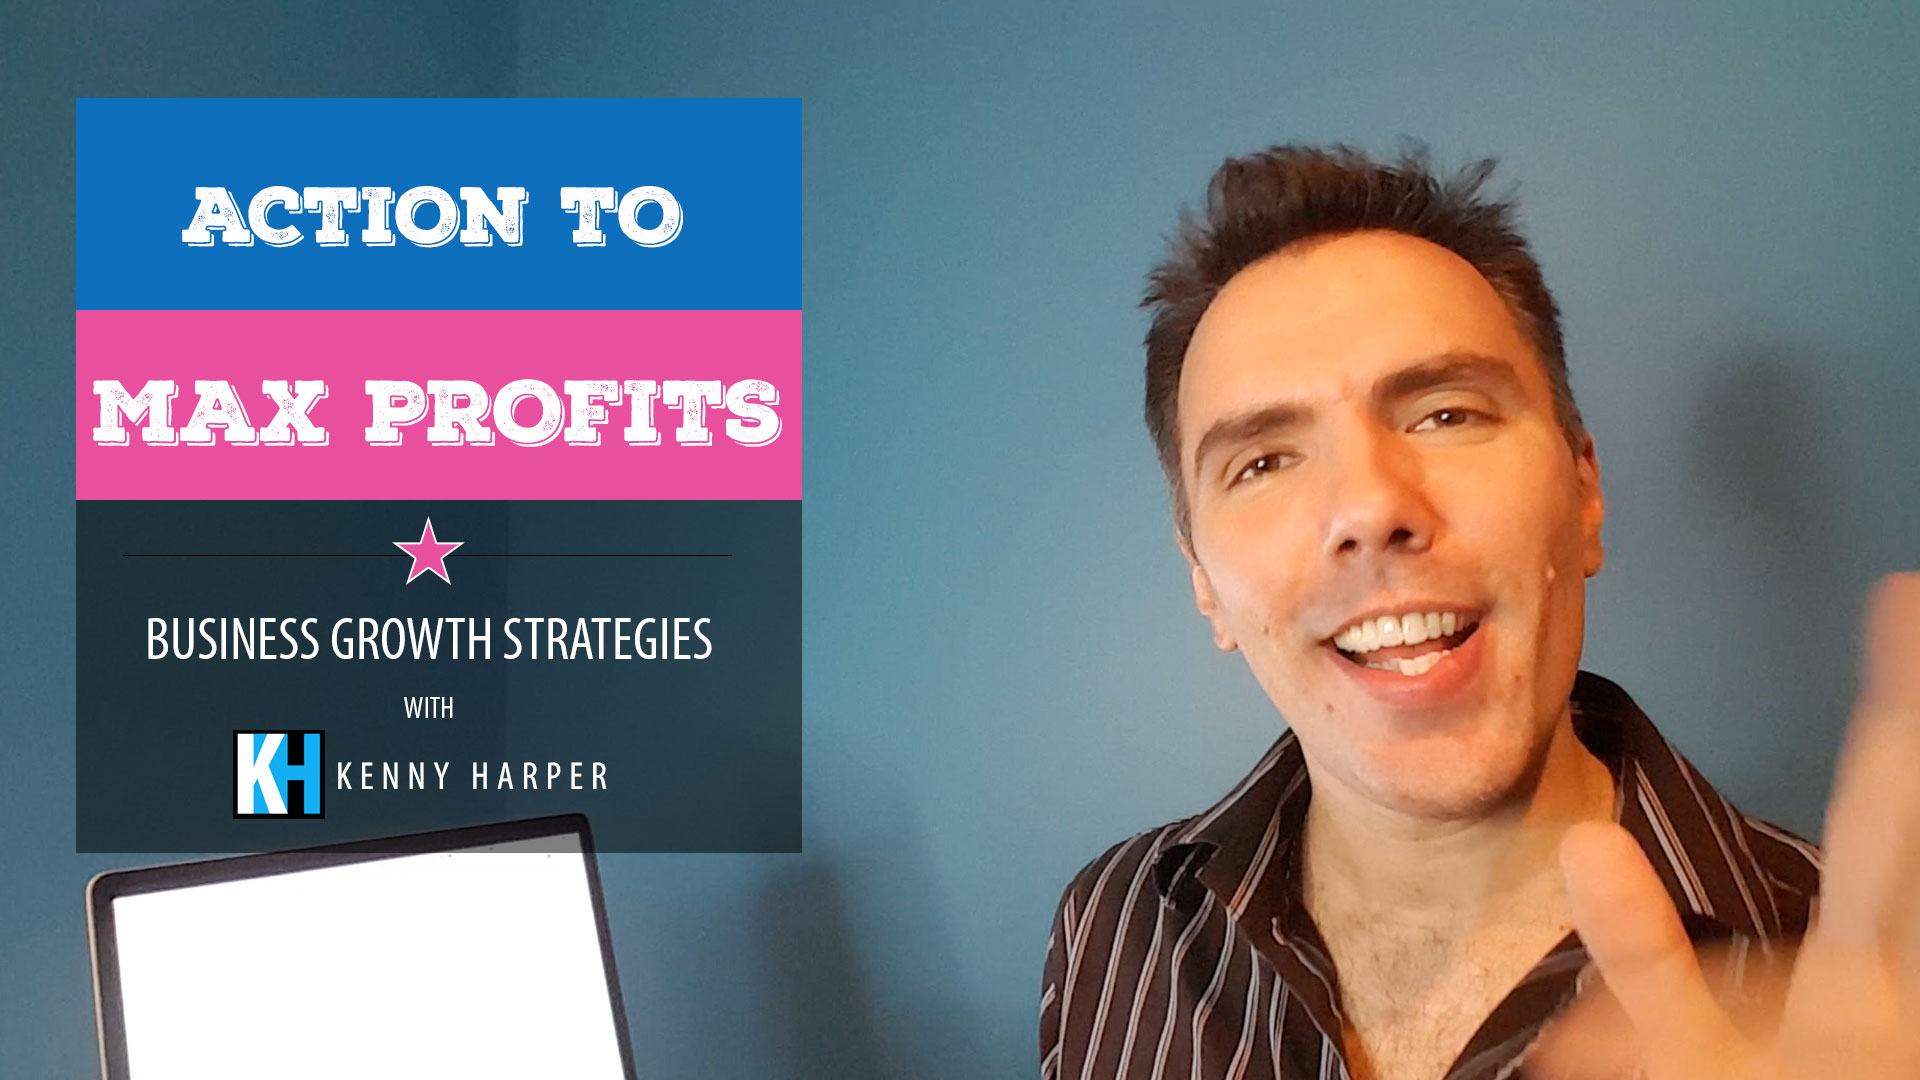 Quick Action to Maximize Profits